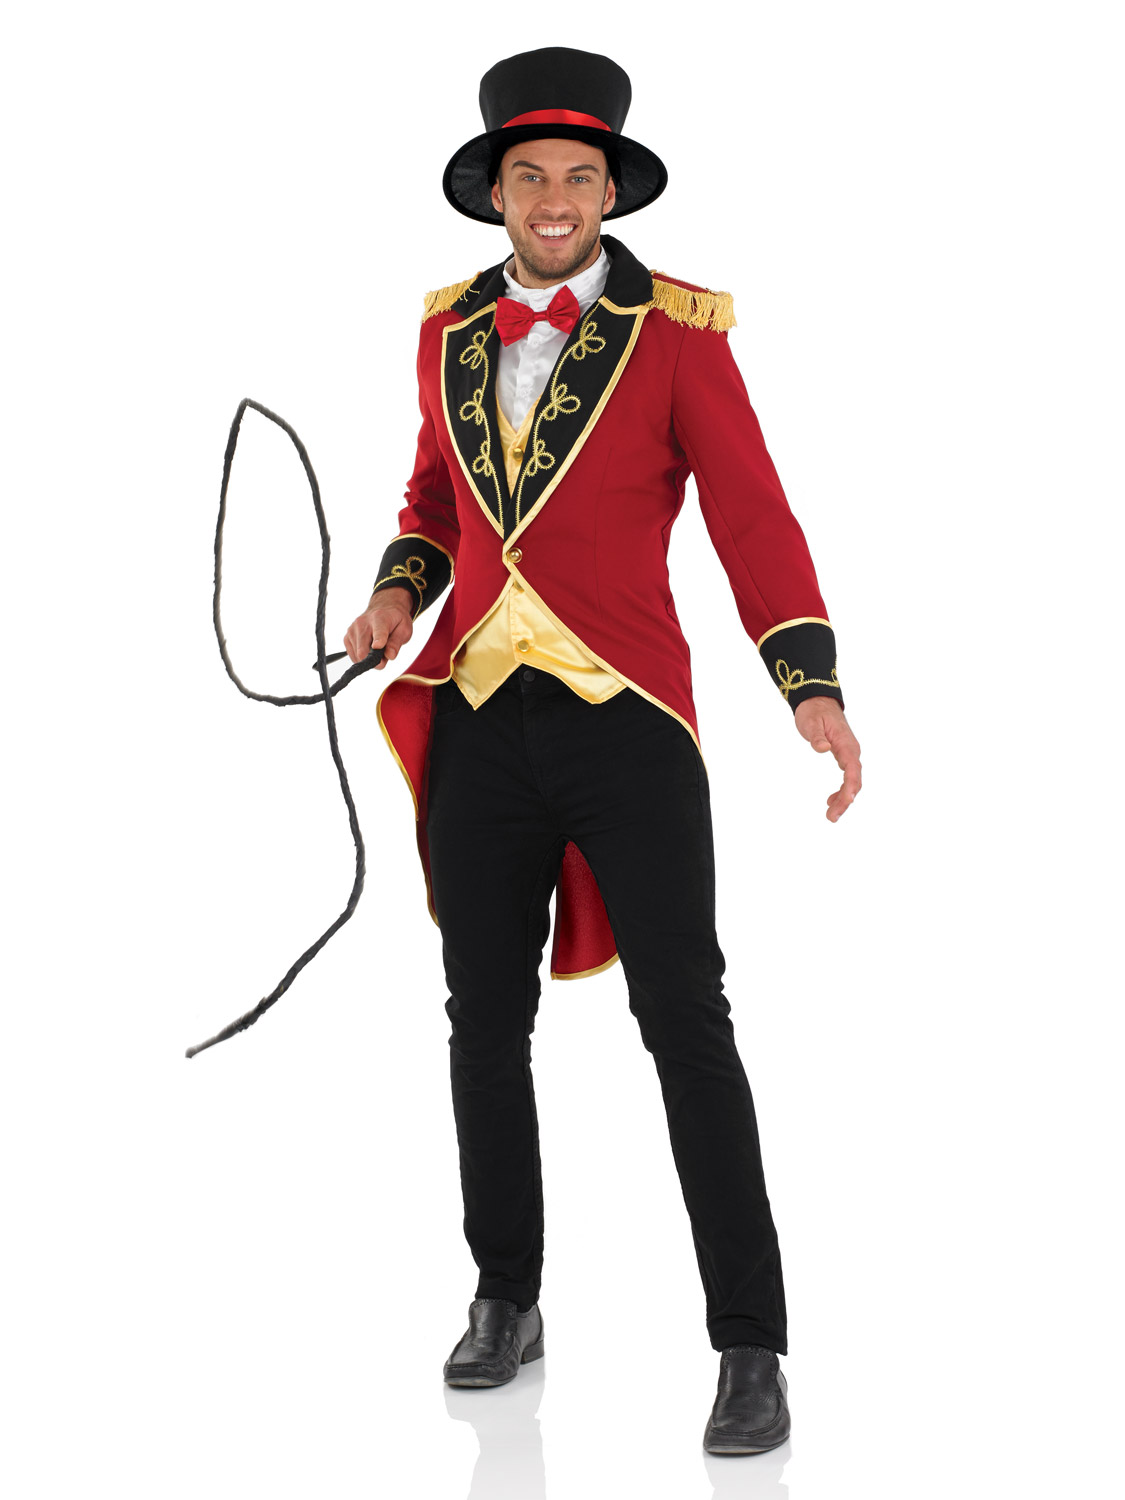 Mens ringmaster costume lion tamer tailcoat top hat circus fancy dress